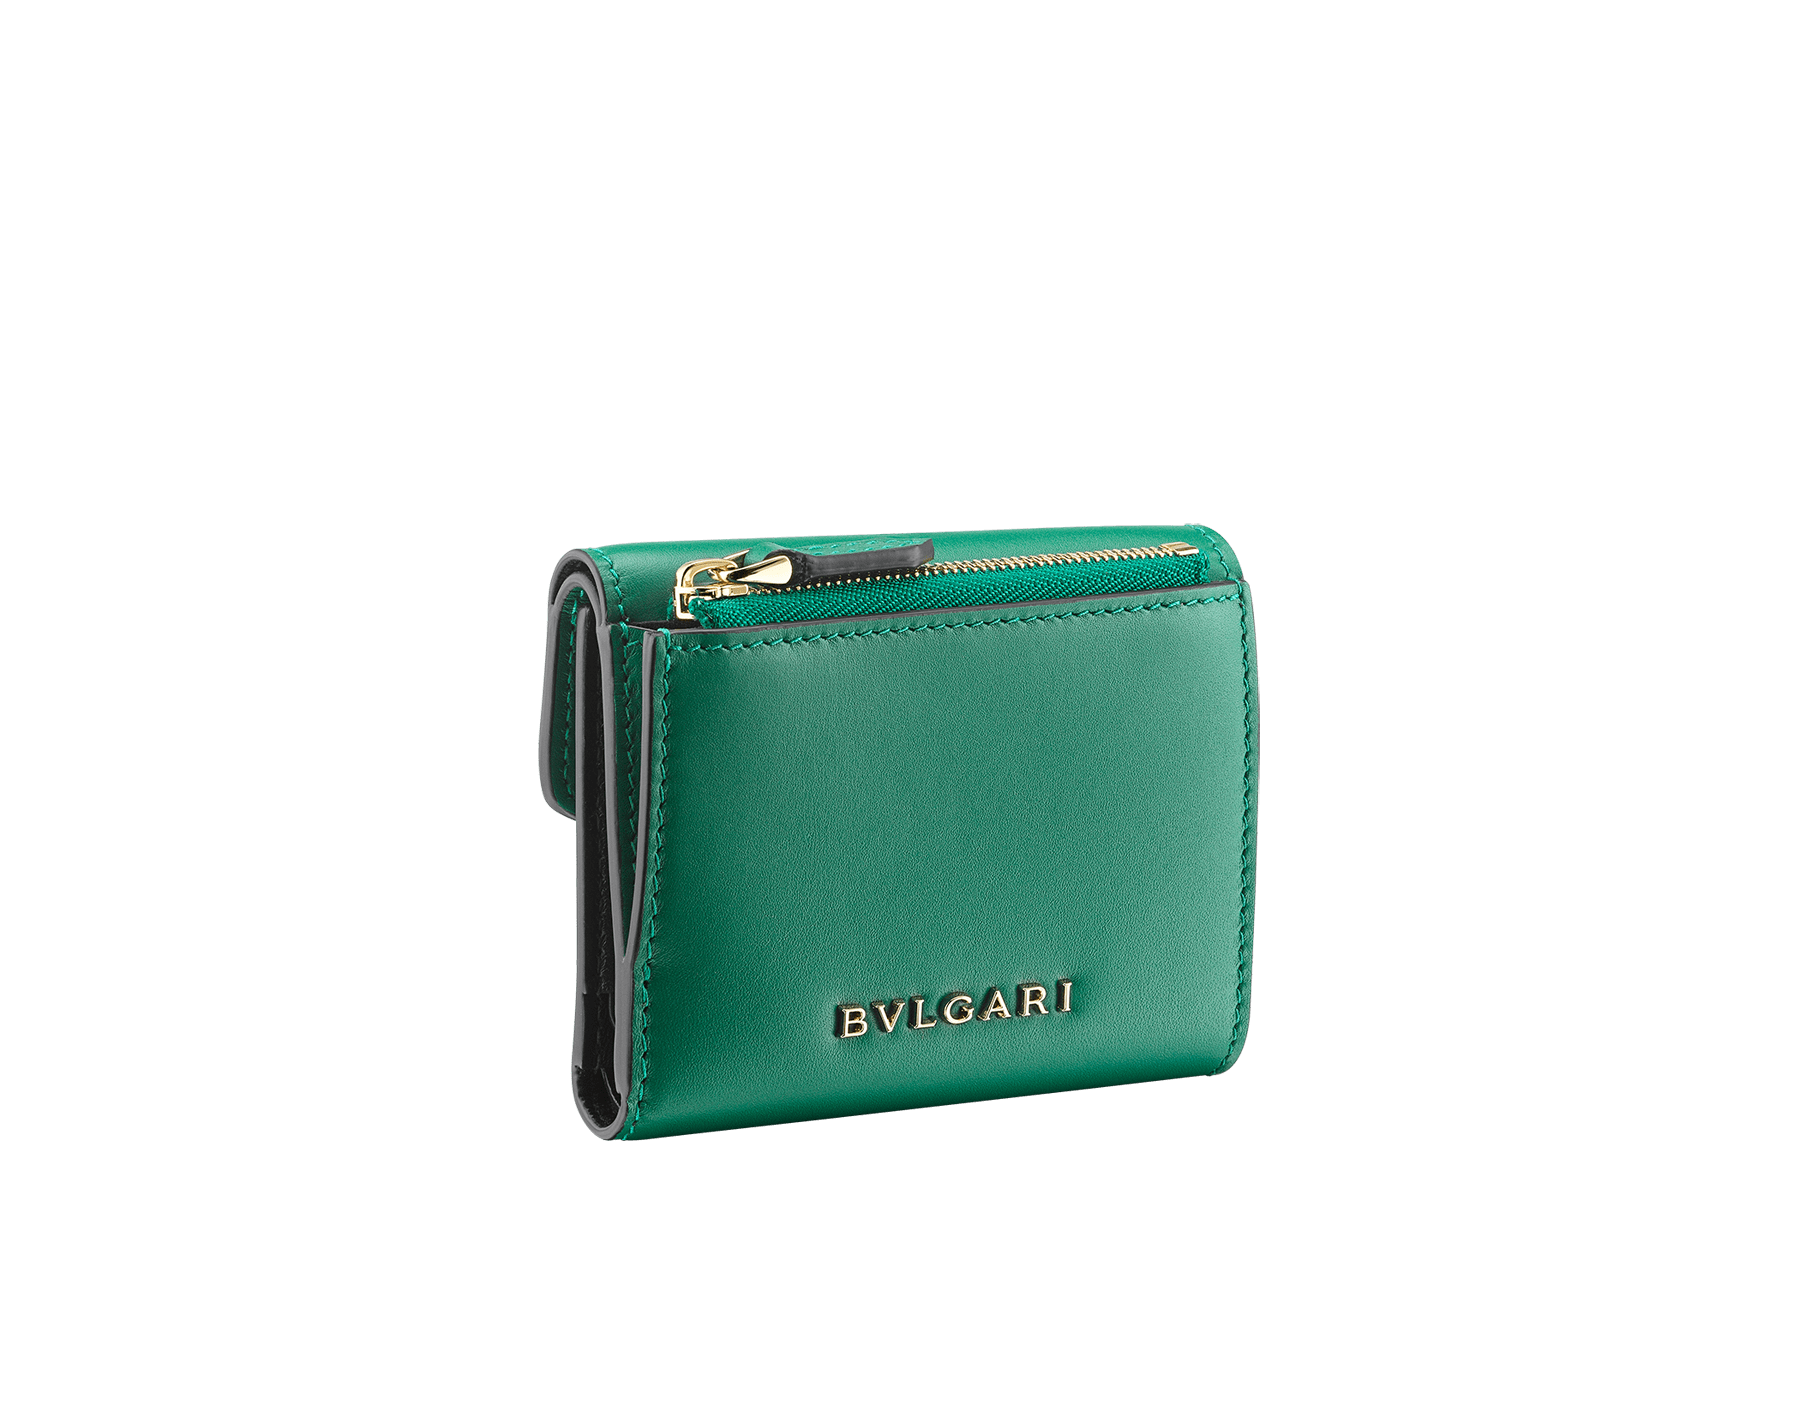 Serpenti Forever compact wallet in daisy topaz calf leather and white agate goatskin. Iconic light gold plated brass snake head stud closure in white agate and daisy topaz enamel, with black onyx eyes. SEA-SLIMCOMPACT-CLa image 5